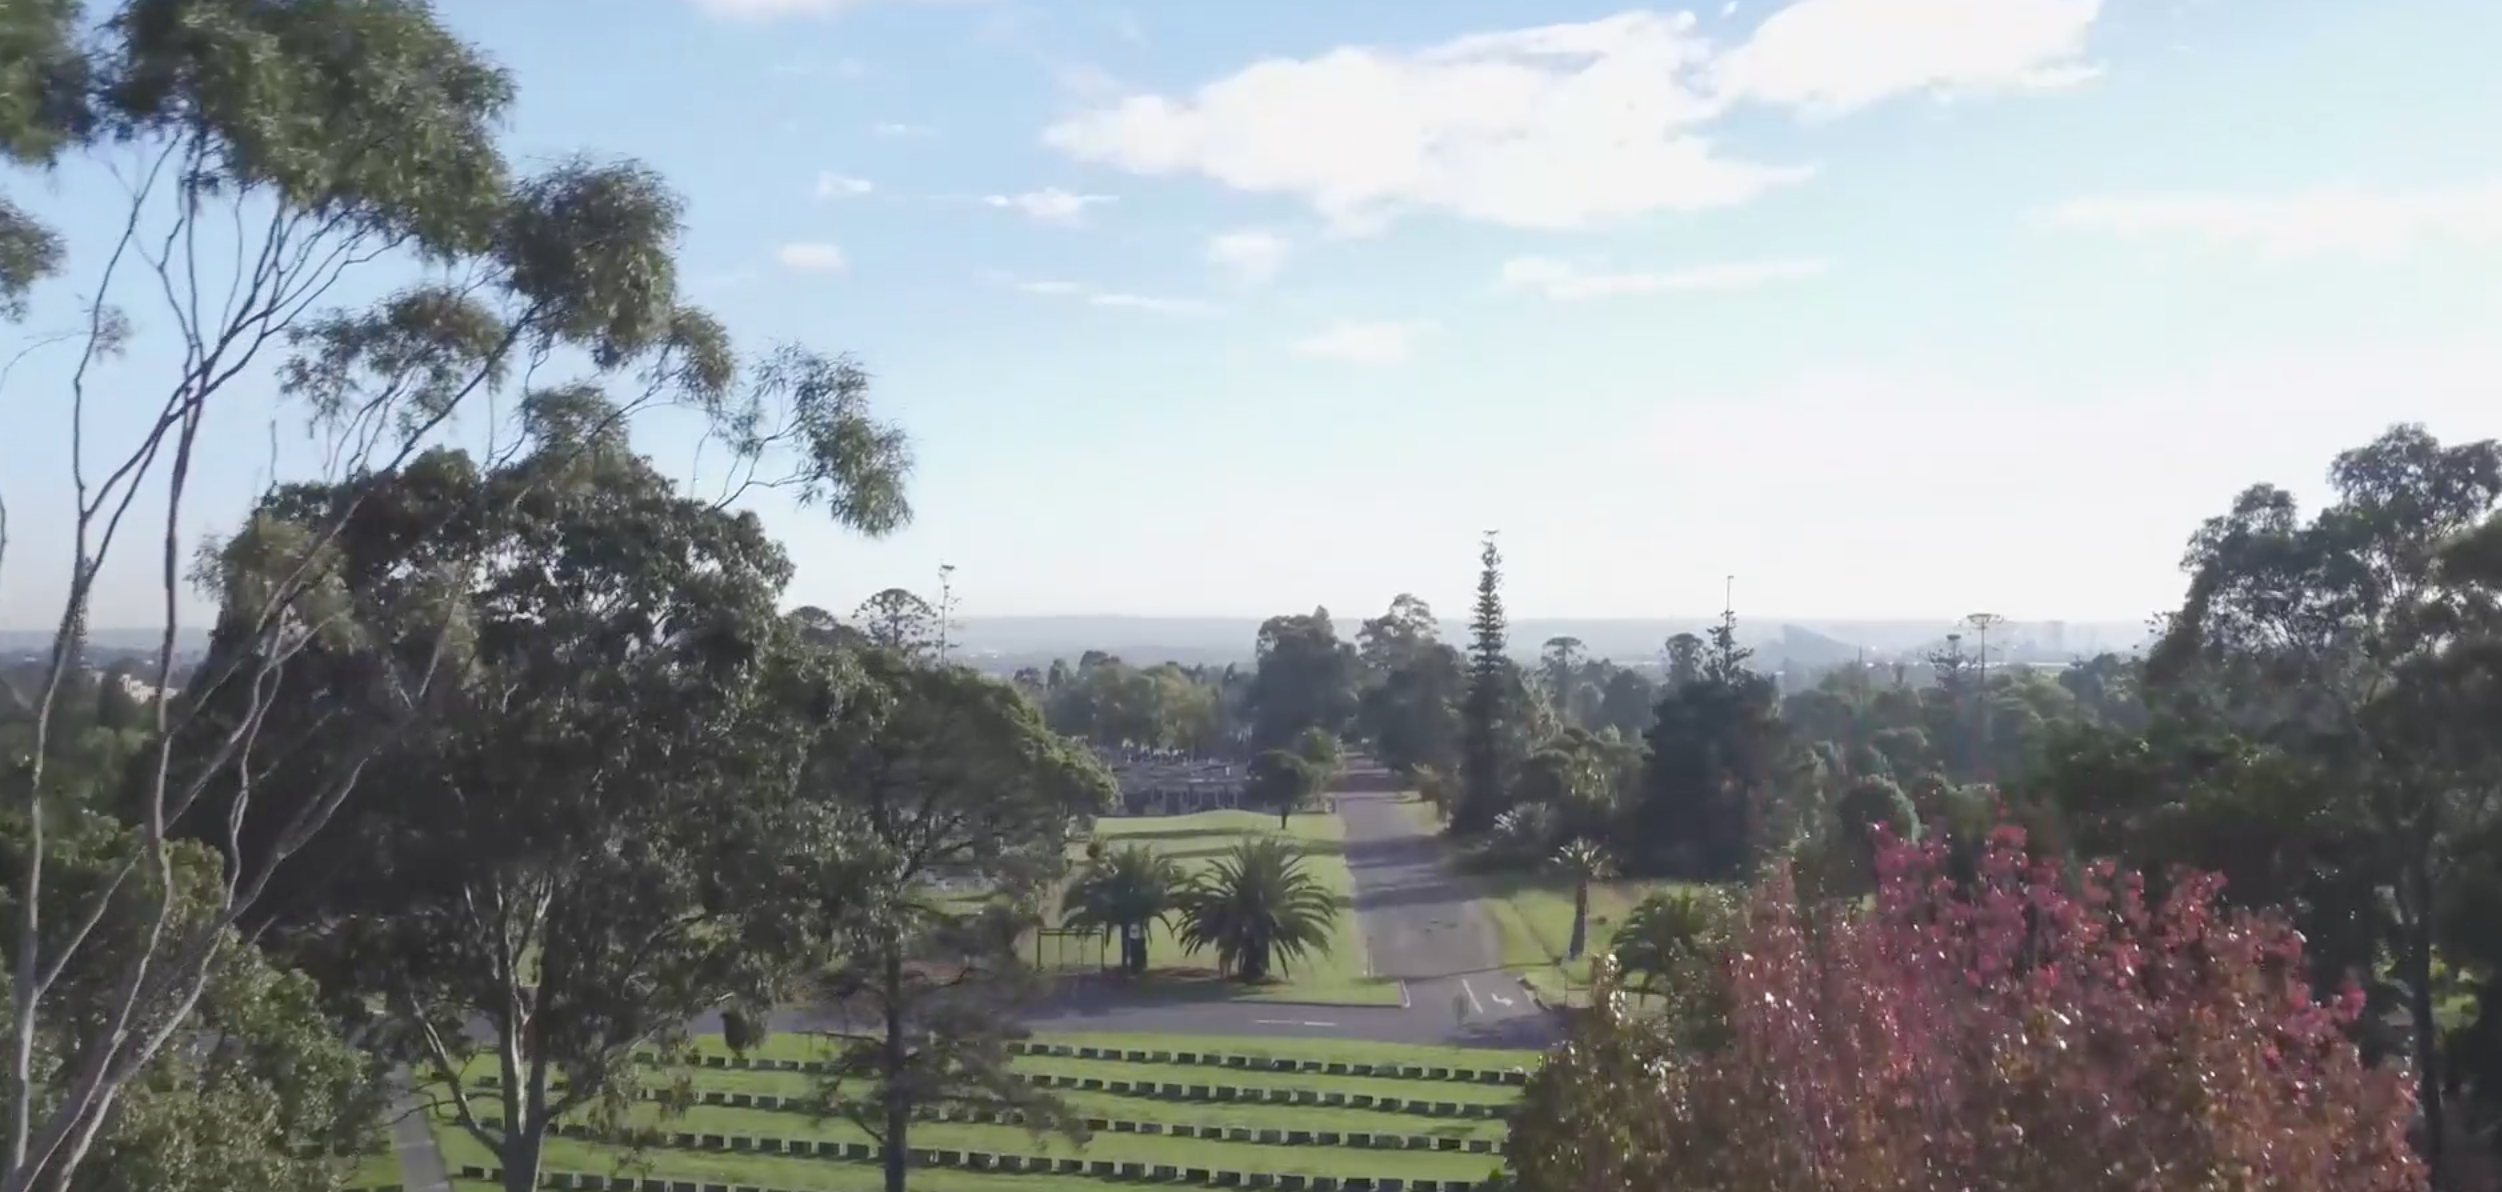 Drone image of Rookwood Cemetery